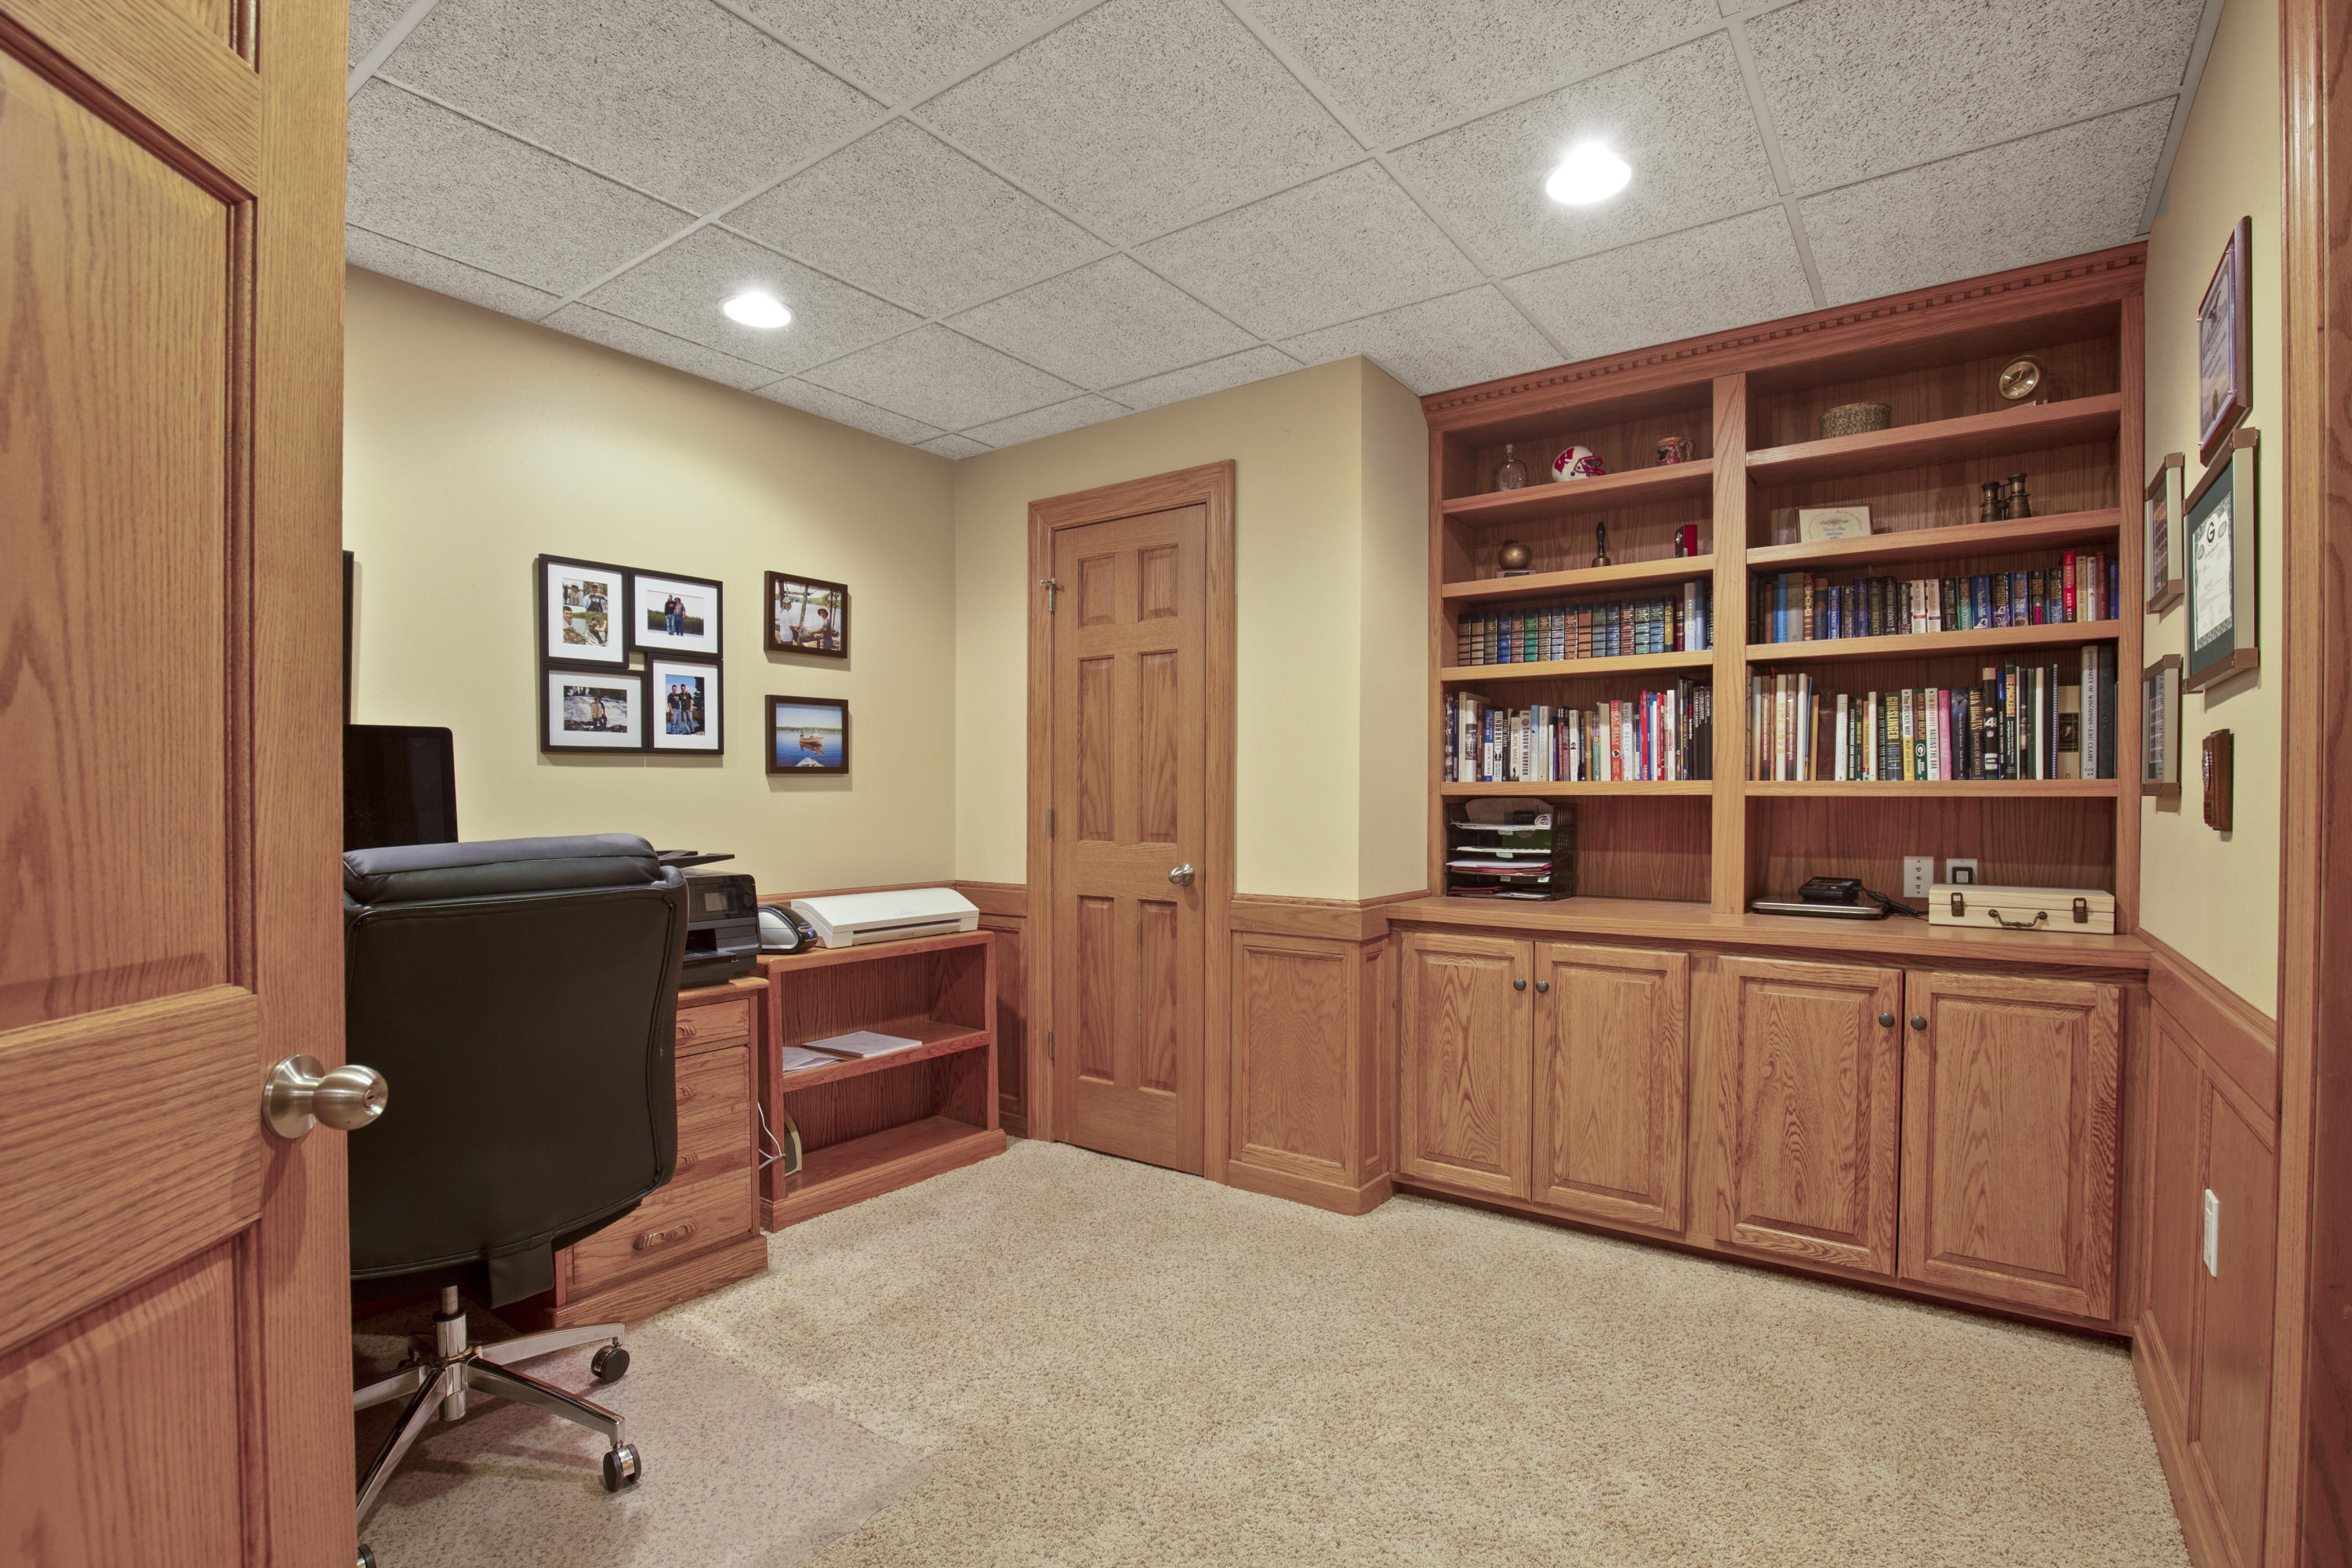 LL Office w/ Bookcases